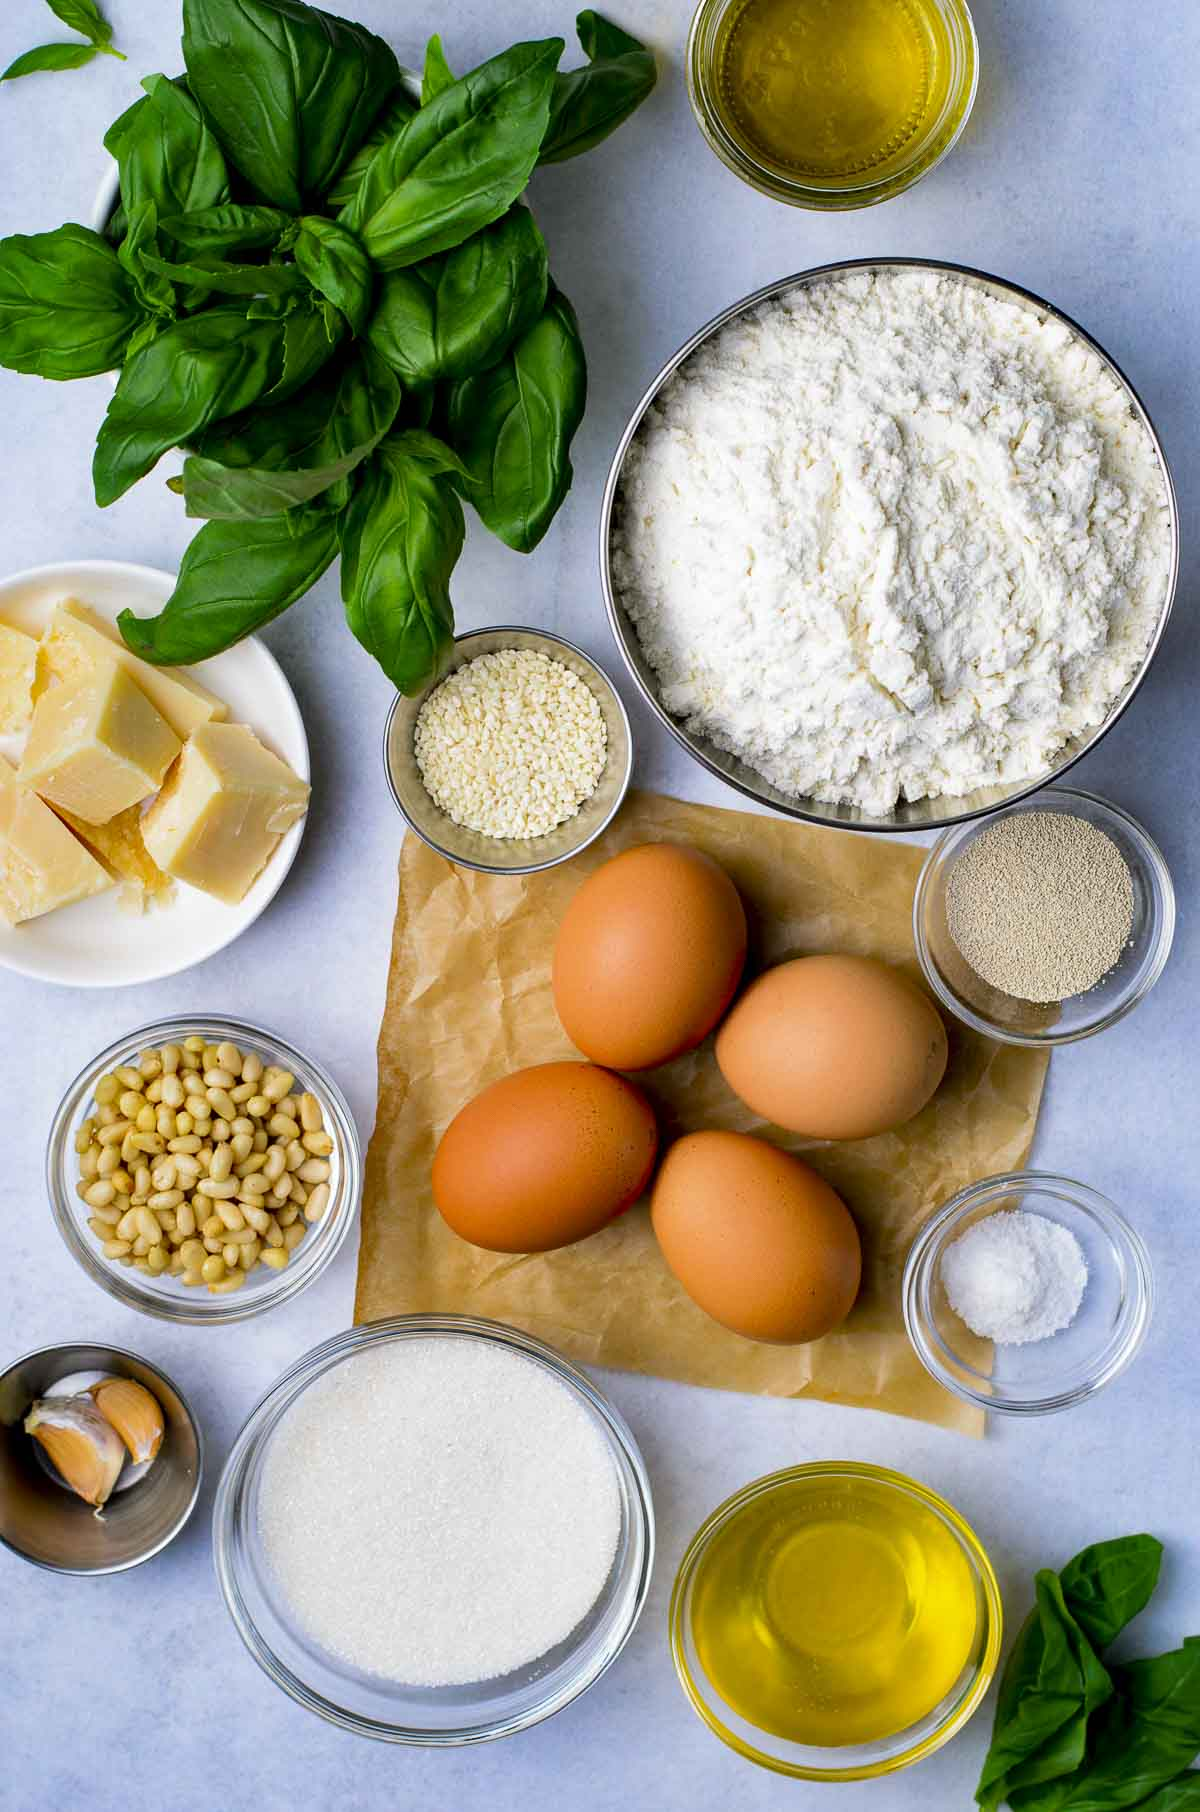 Ingredients needed to make challah bread.